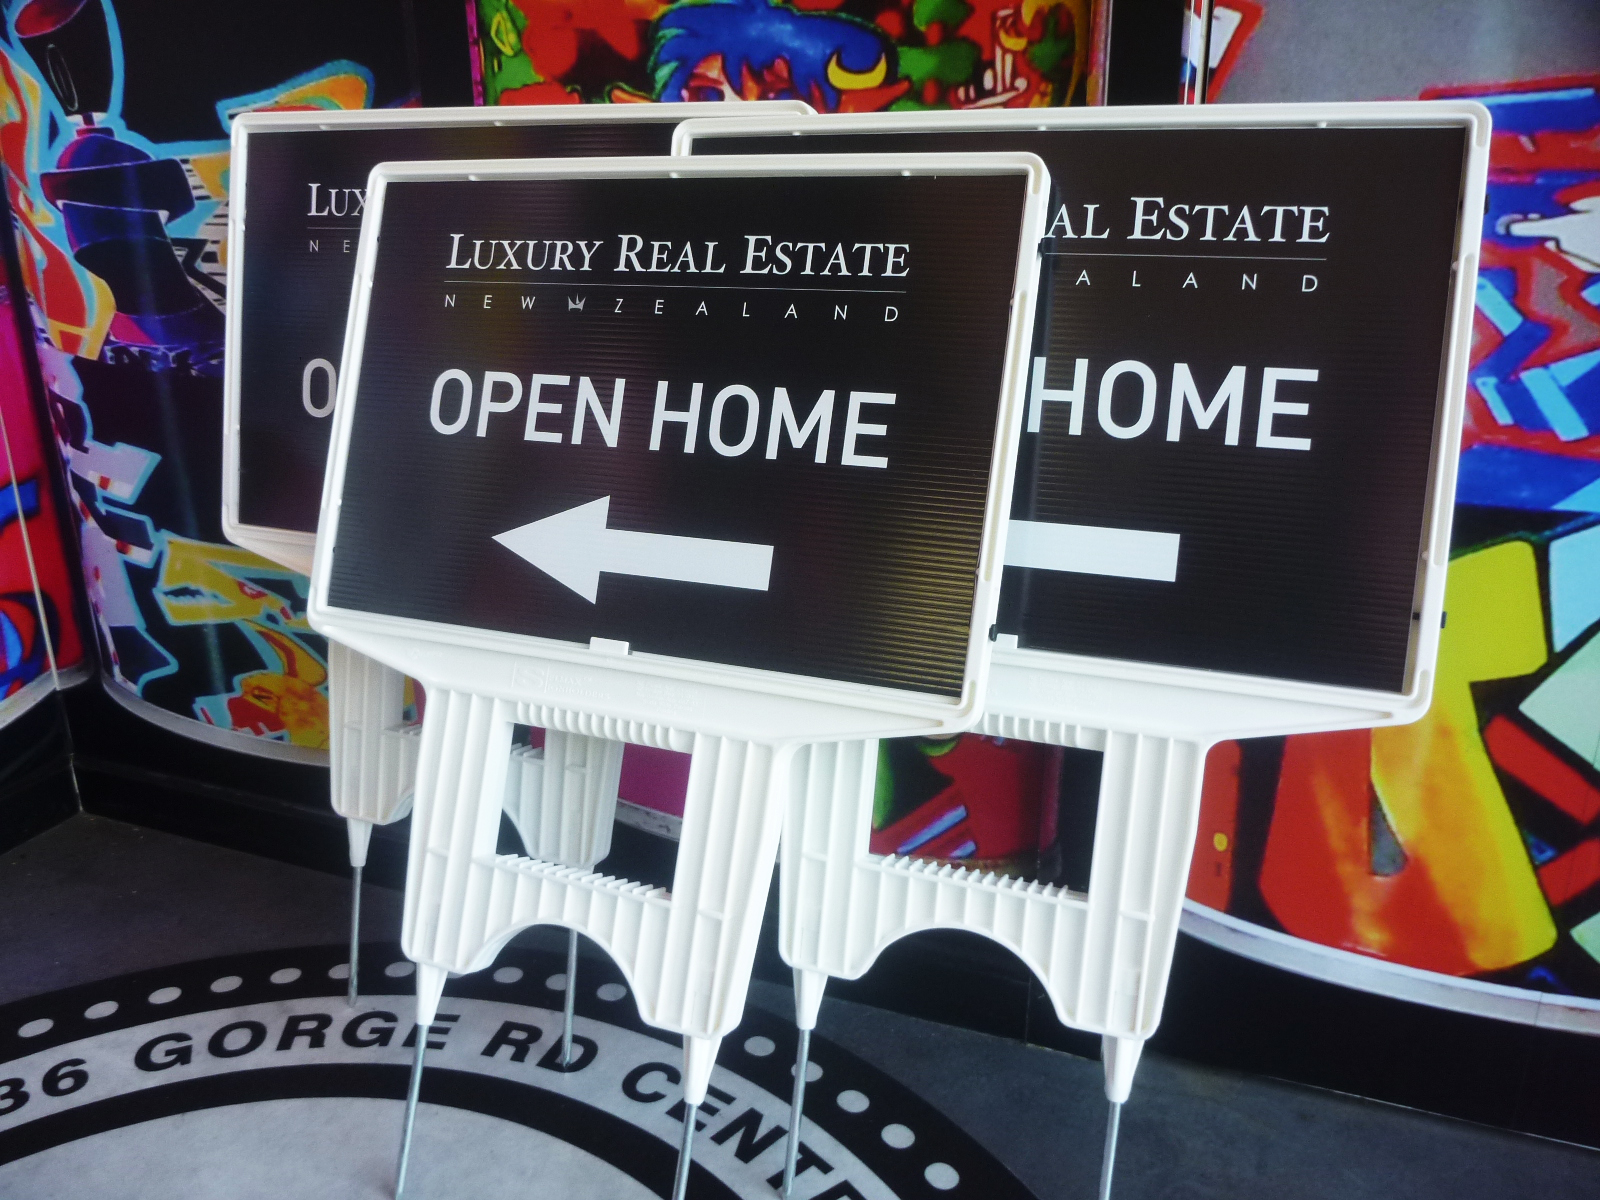 Luxury Real Estate Frame